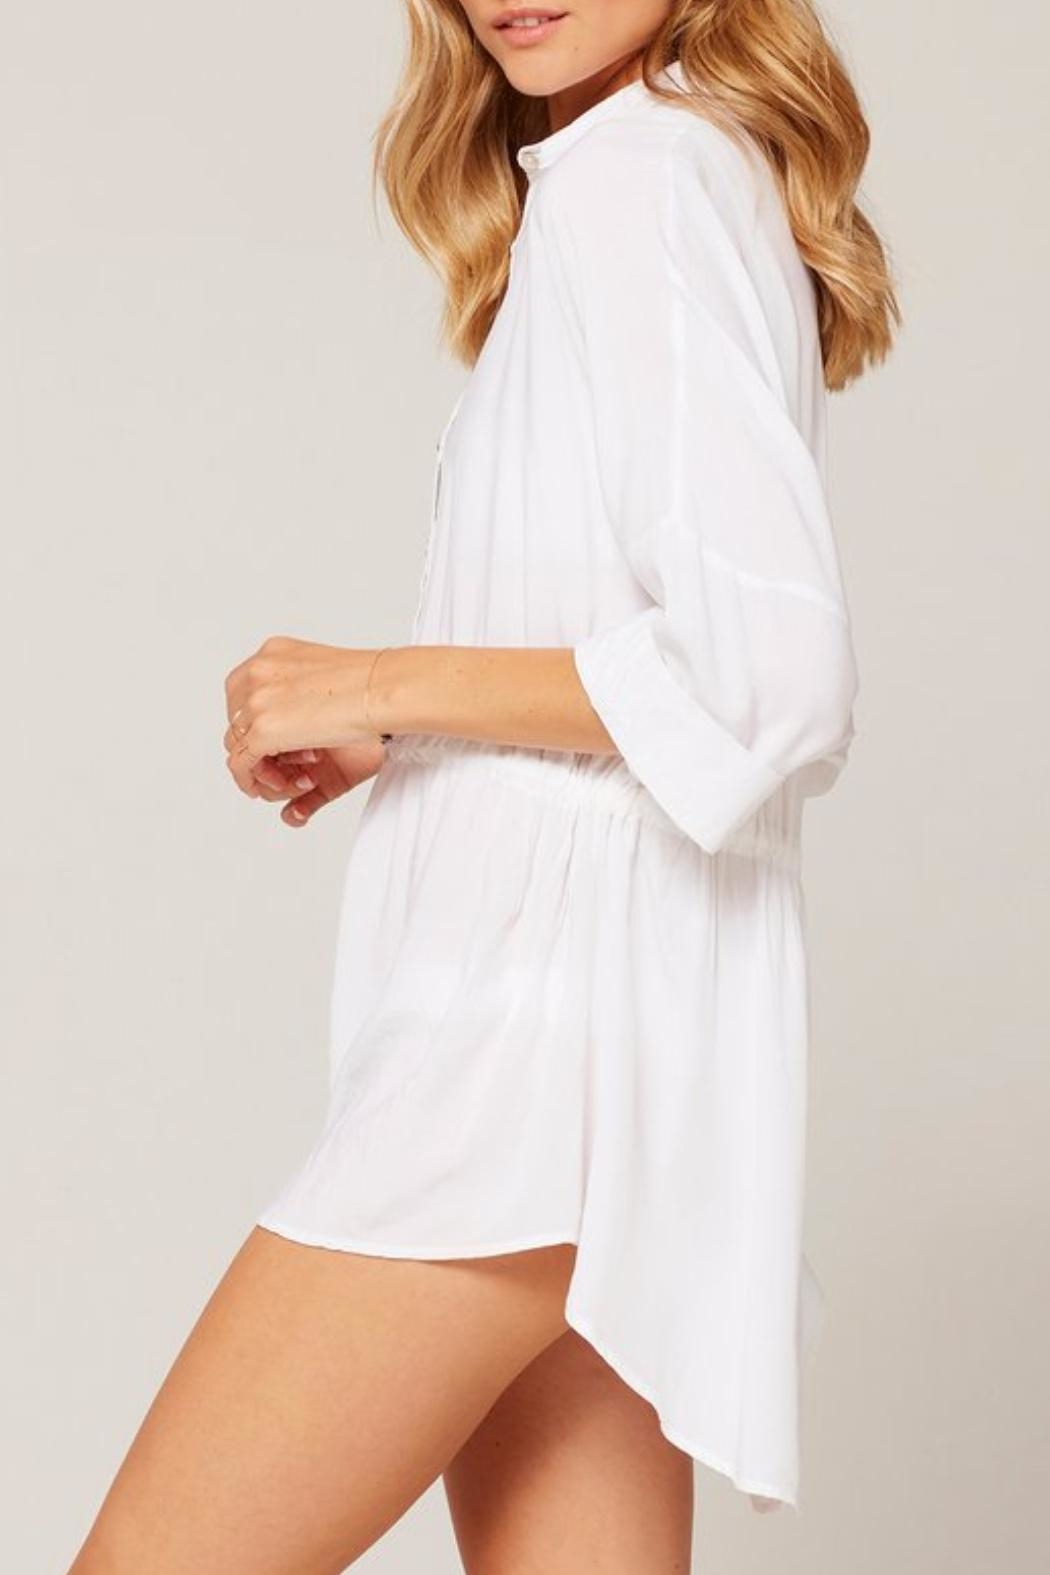 L SPACE Pacifica Button-Down Tunic - Back Cropped Image